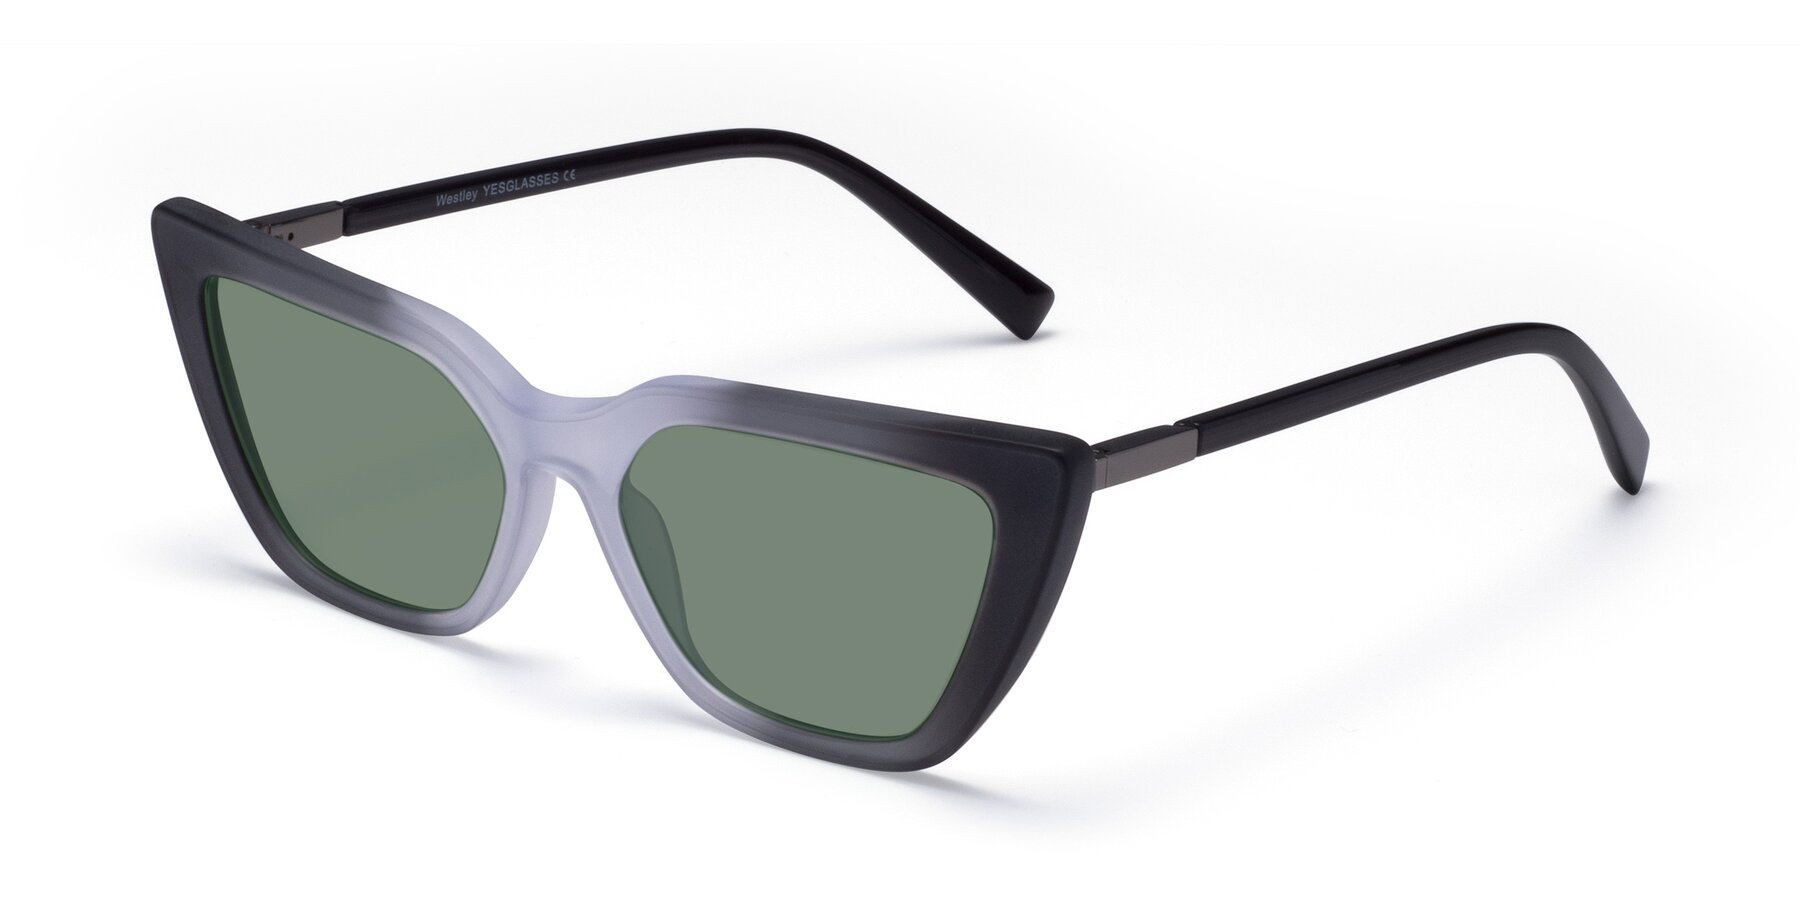 Angle of Westley in Gradient Black with Medium Green Tinted Lenses